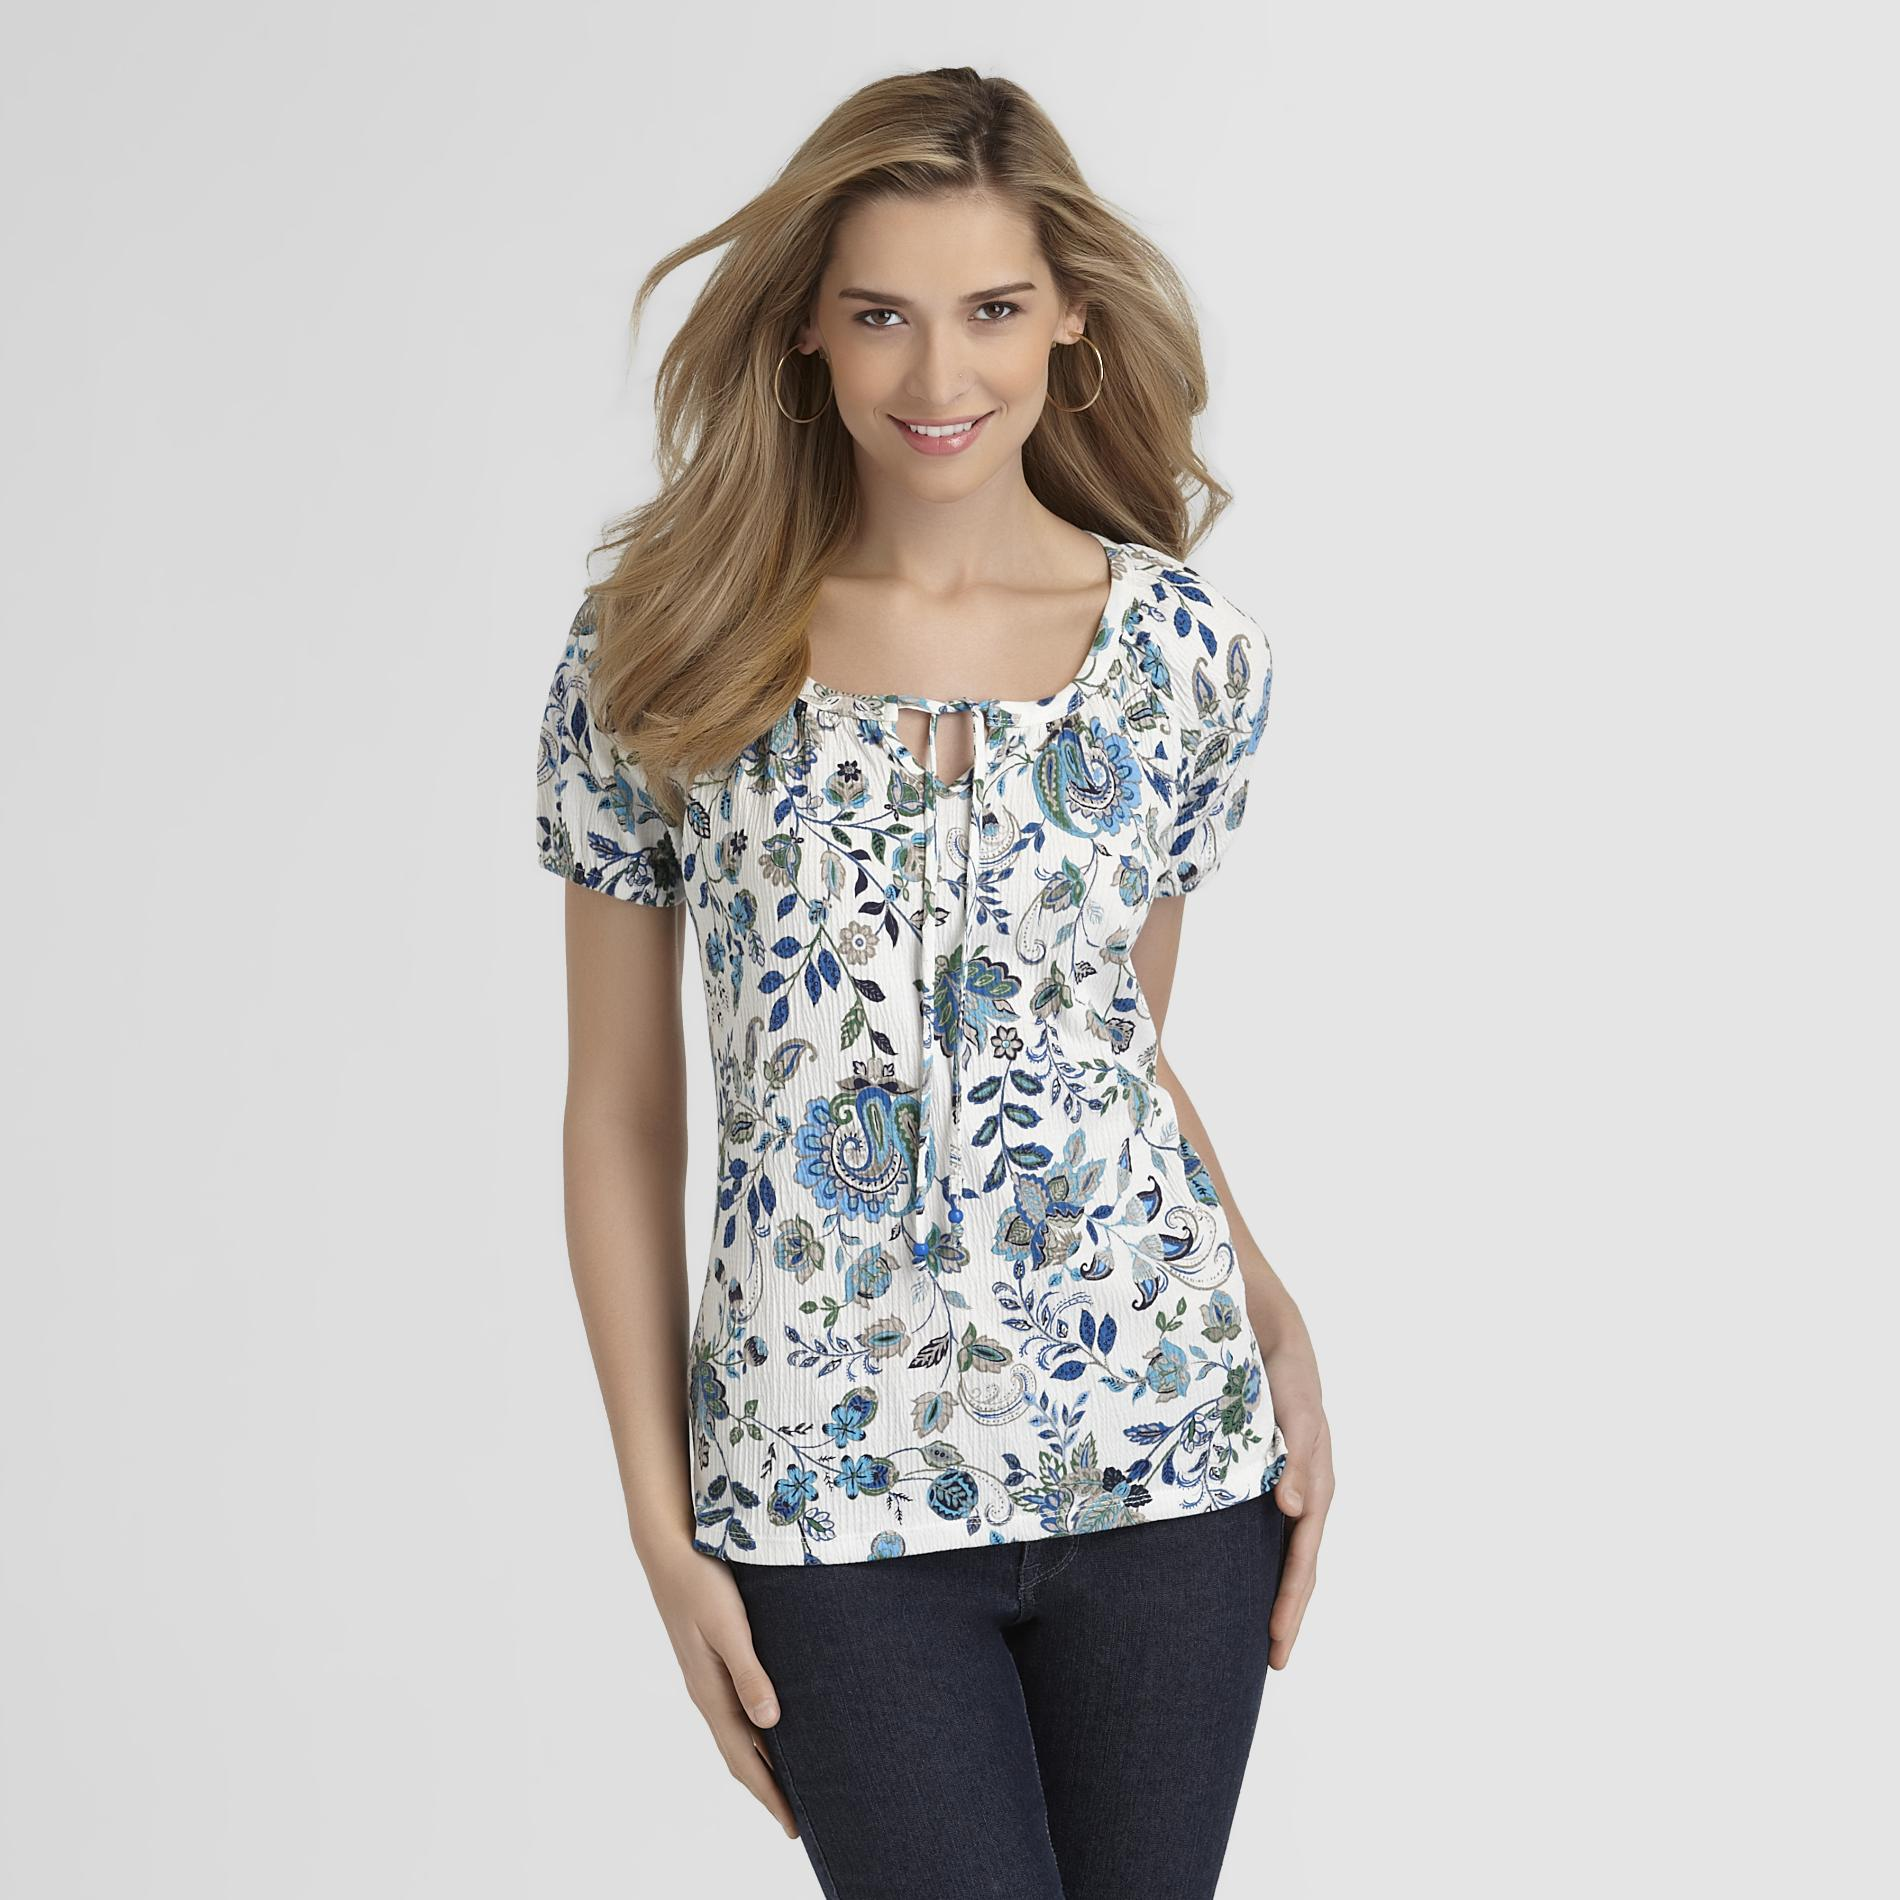 Basic Editions Women's Gauze Peasant Top - Floral Print at Kmart.com